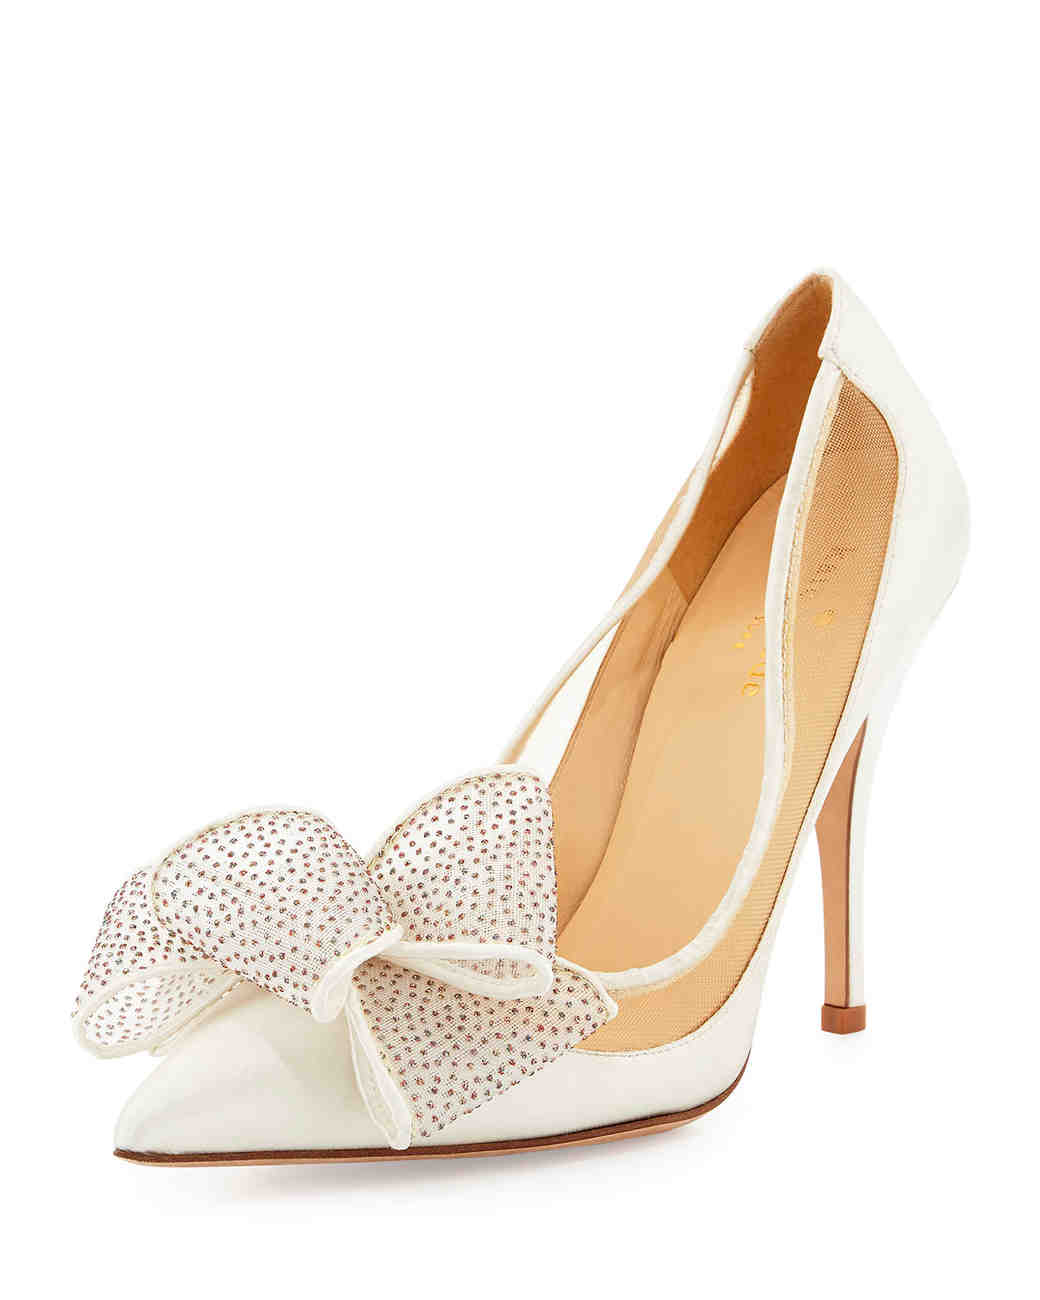 e167875202 12 Wedding Shoes That Are a Sheer Delight | Martha Stewart Weddings